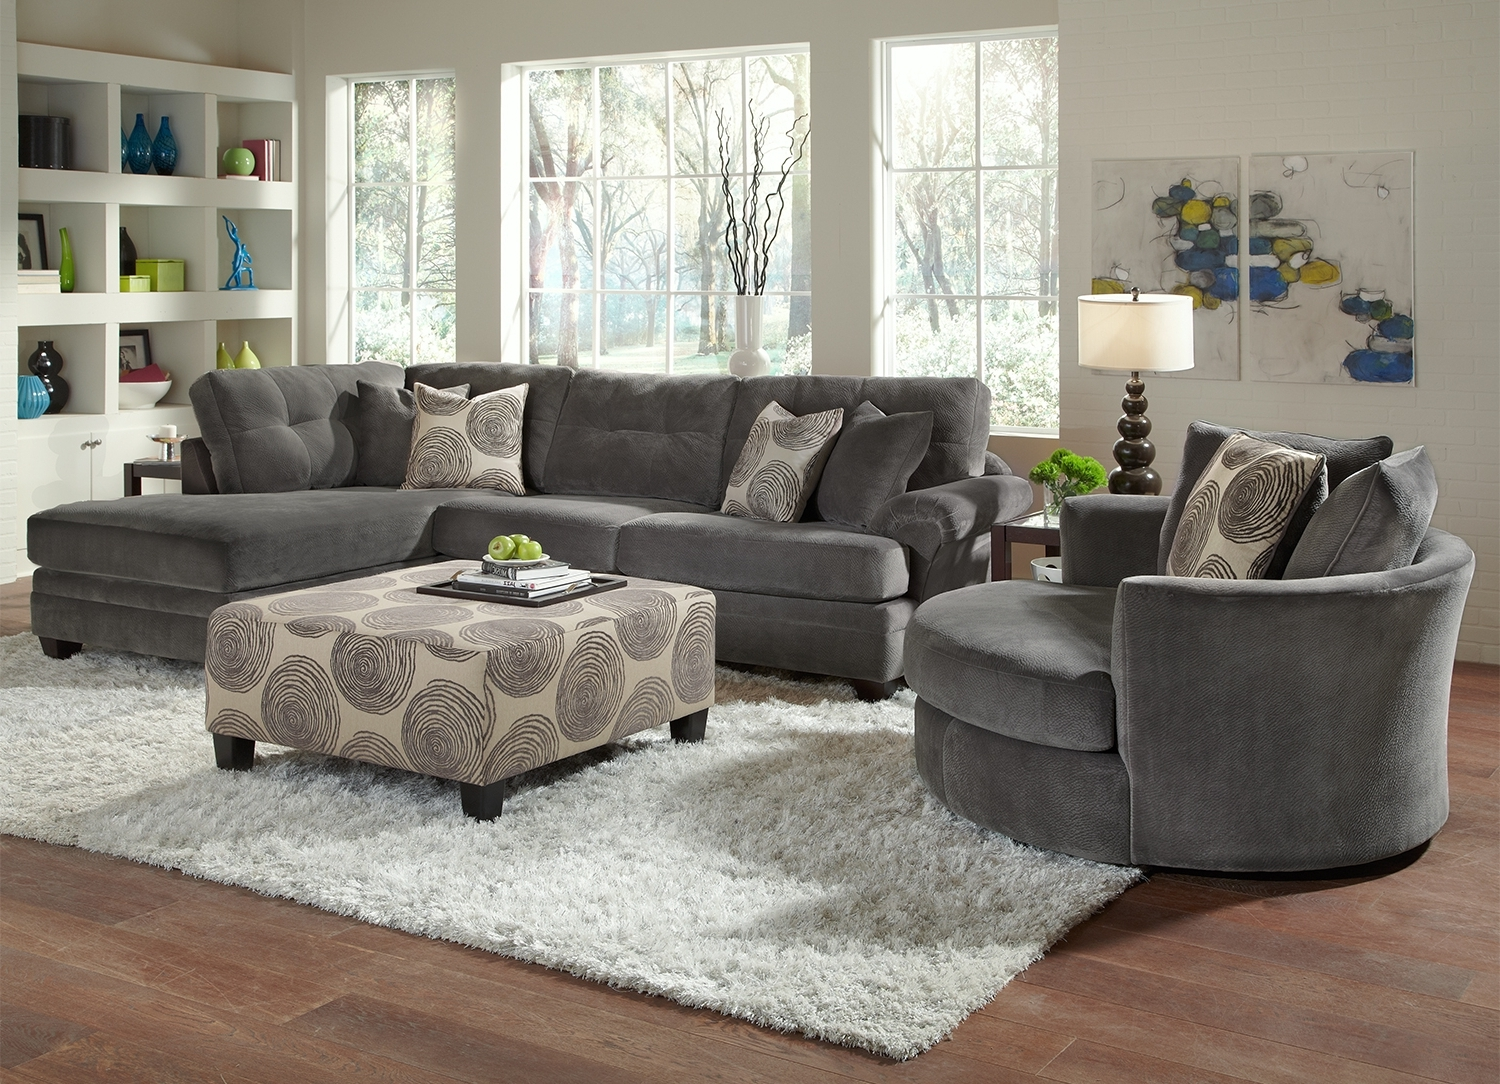 Grey Modern Swivel Chairs Sets for Living Room with Cheap Modern Sectional Sofa Furniture